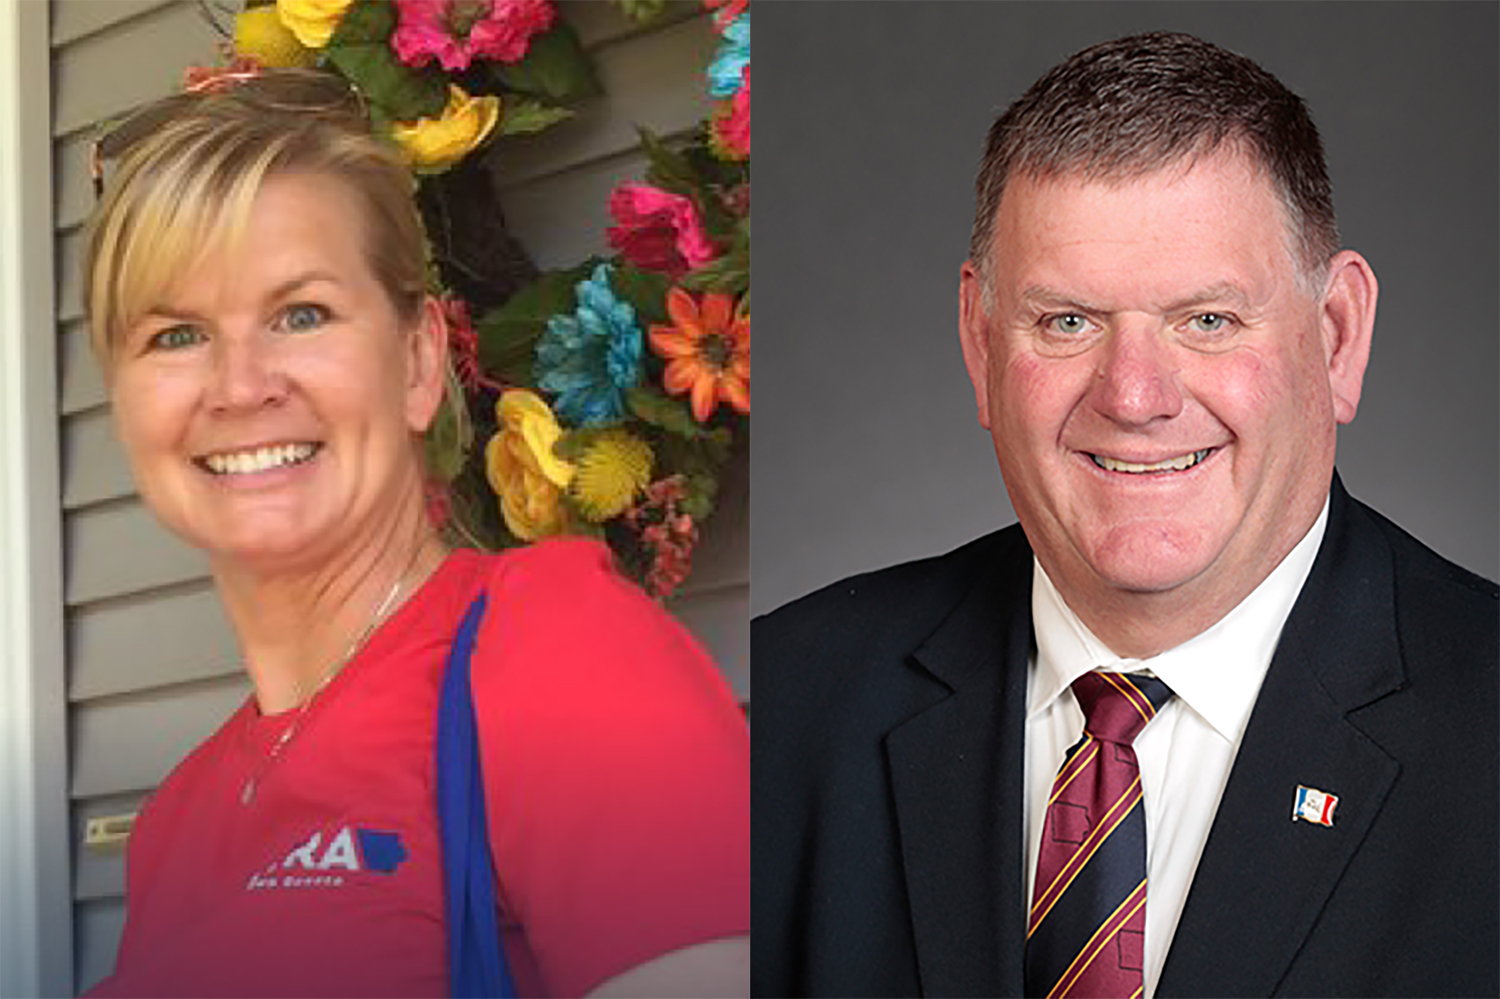 Republican Heather Hora (left) seeks to take over the State Senate District 39 seat  from Democratic incumbent Kevin Kinney (right).